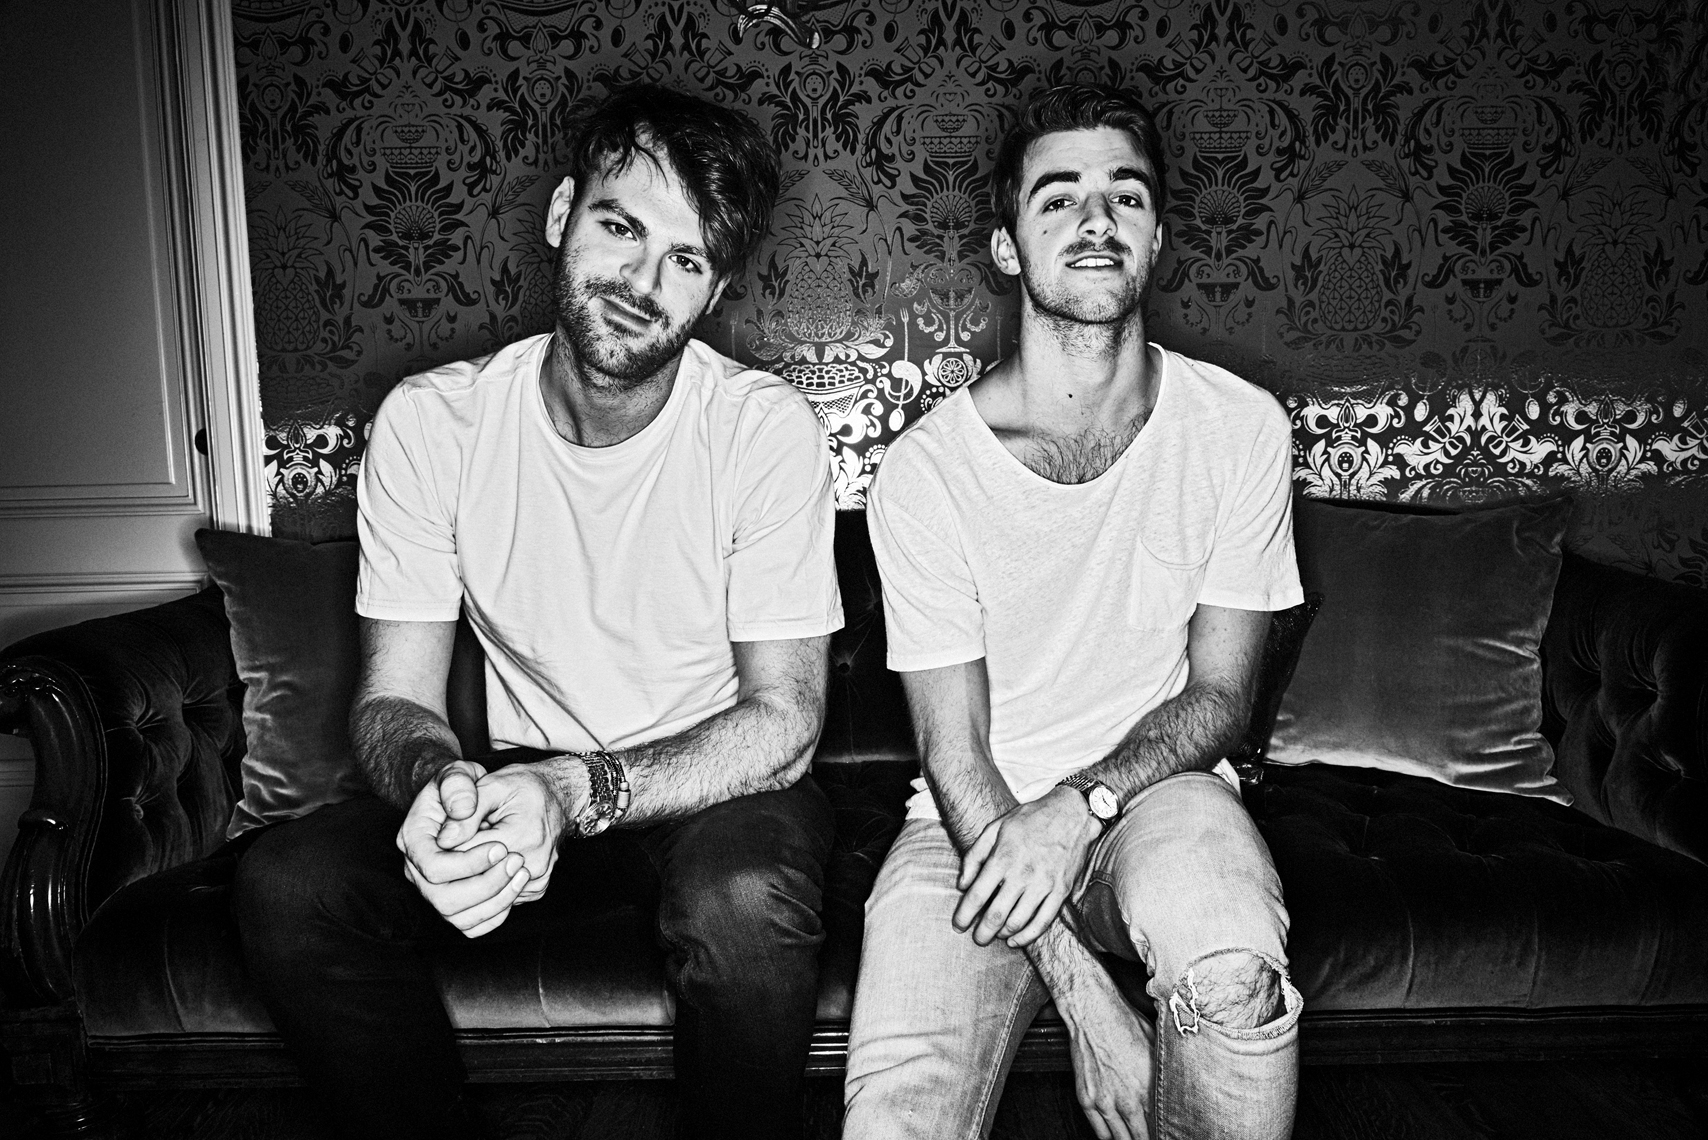 THE_CHAINSMOKERS_RAINER_HOSCH